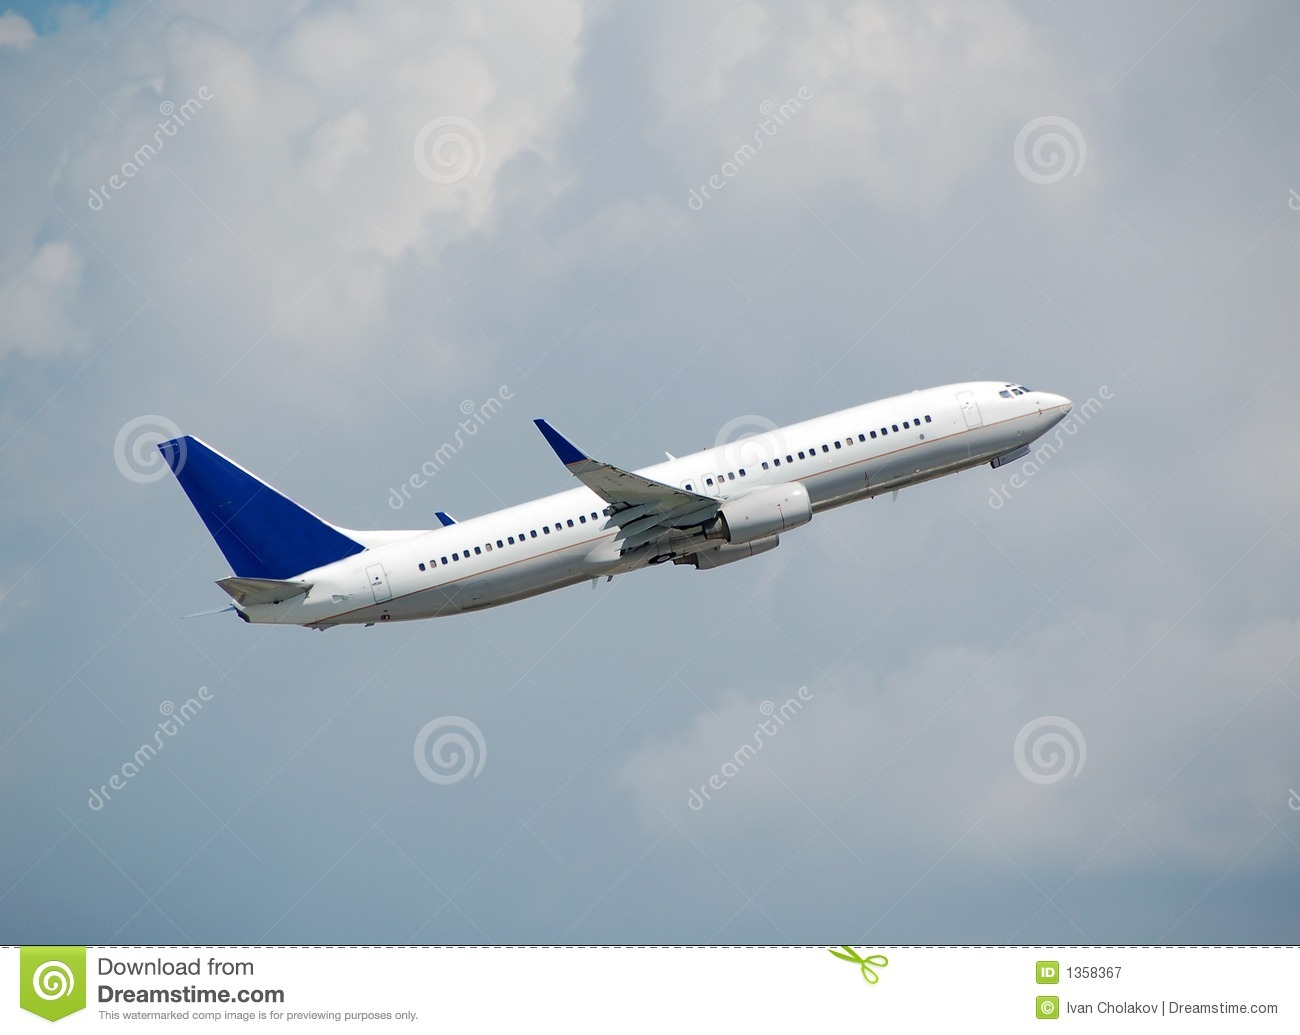 D collage moderne d 39 avion de passagers photographie stock - Photographie d art en ligne ...